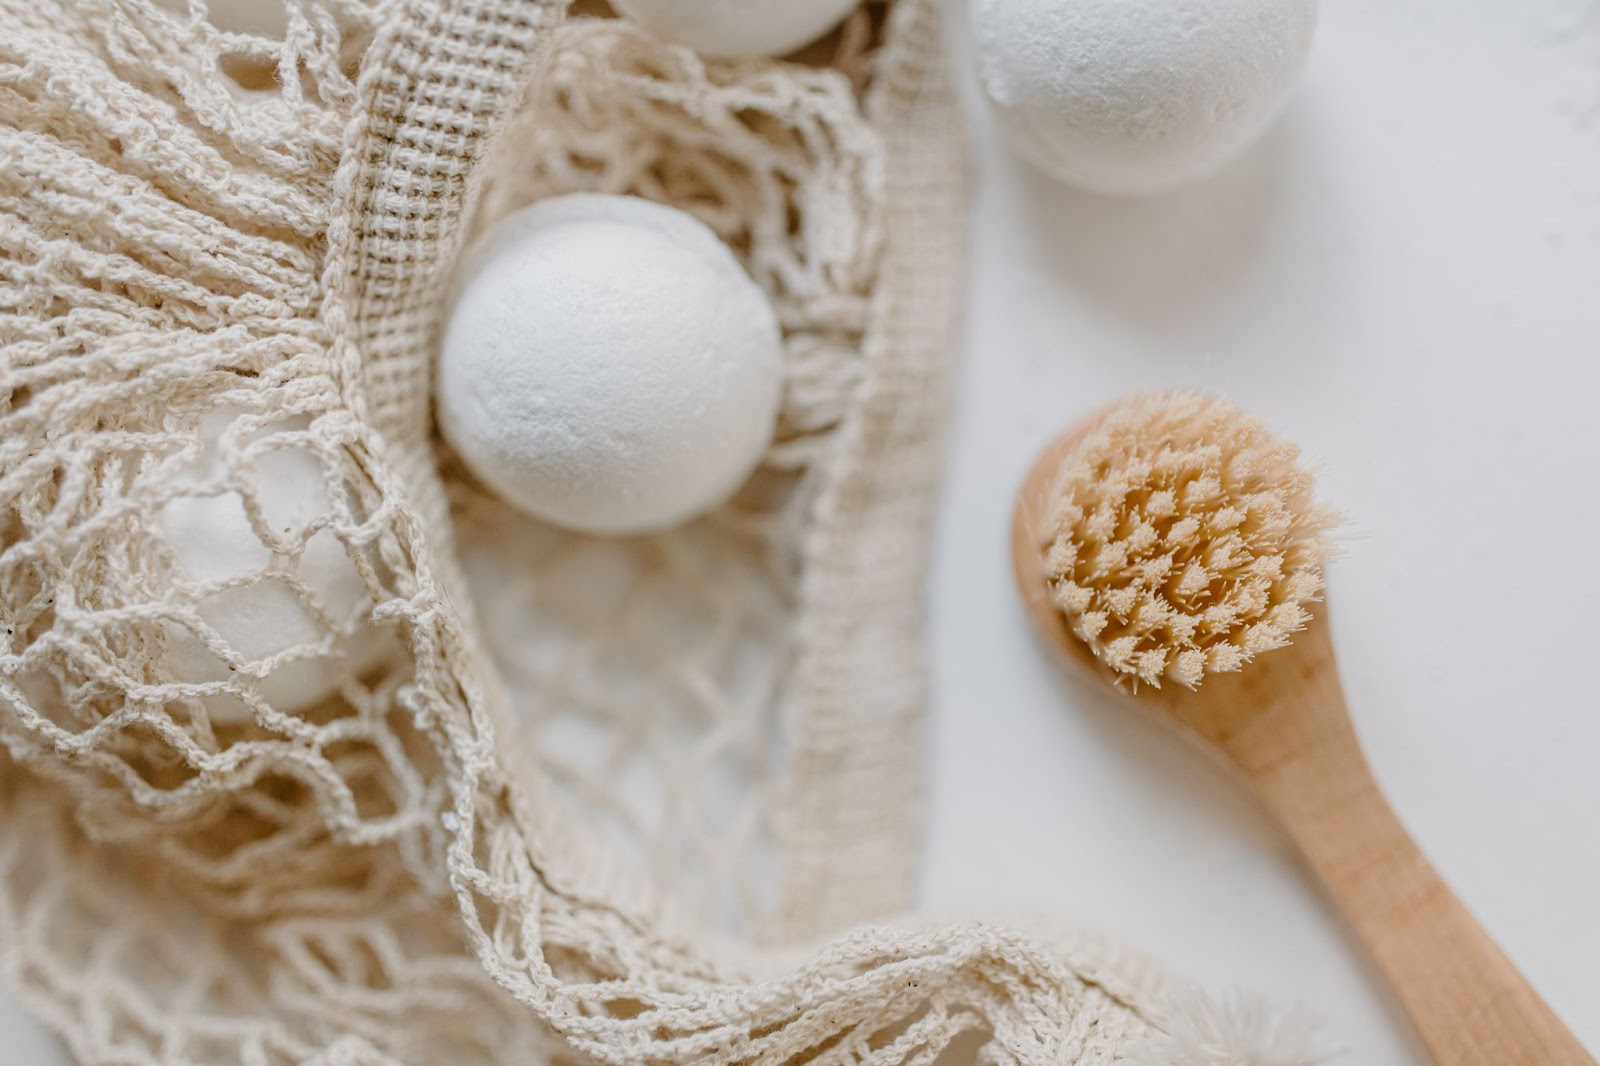 Close up of a bath bomb and a loofa. 'Self care' is one of the popular beauty & jewelry keywords on Etsy.